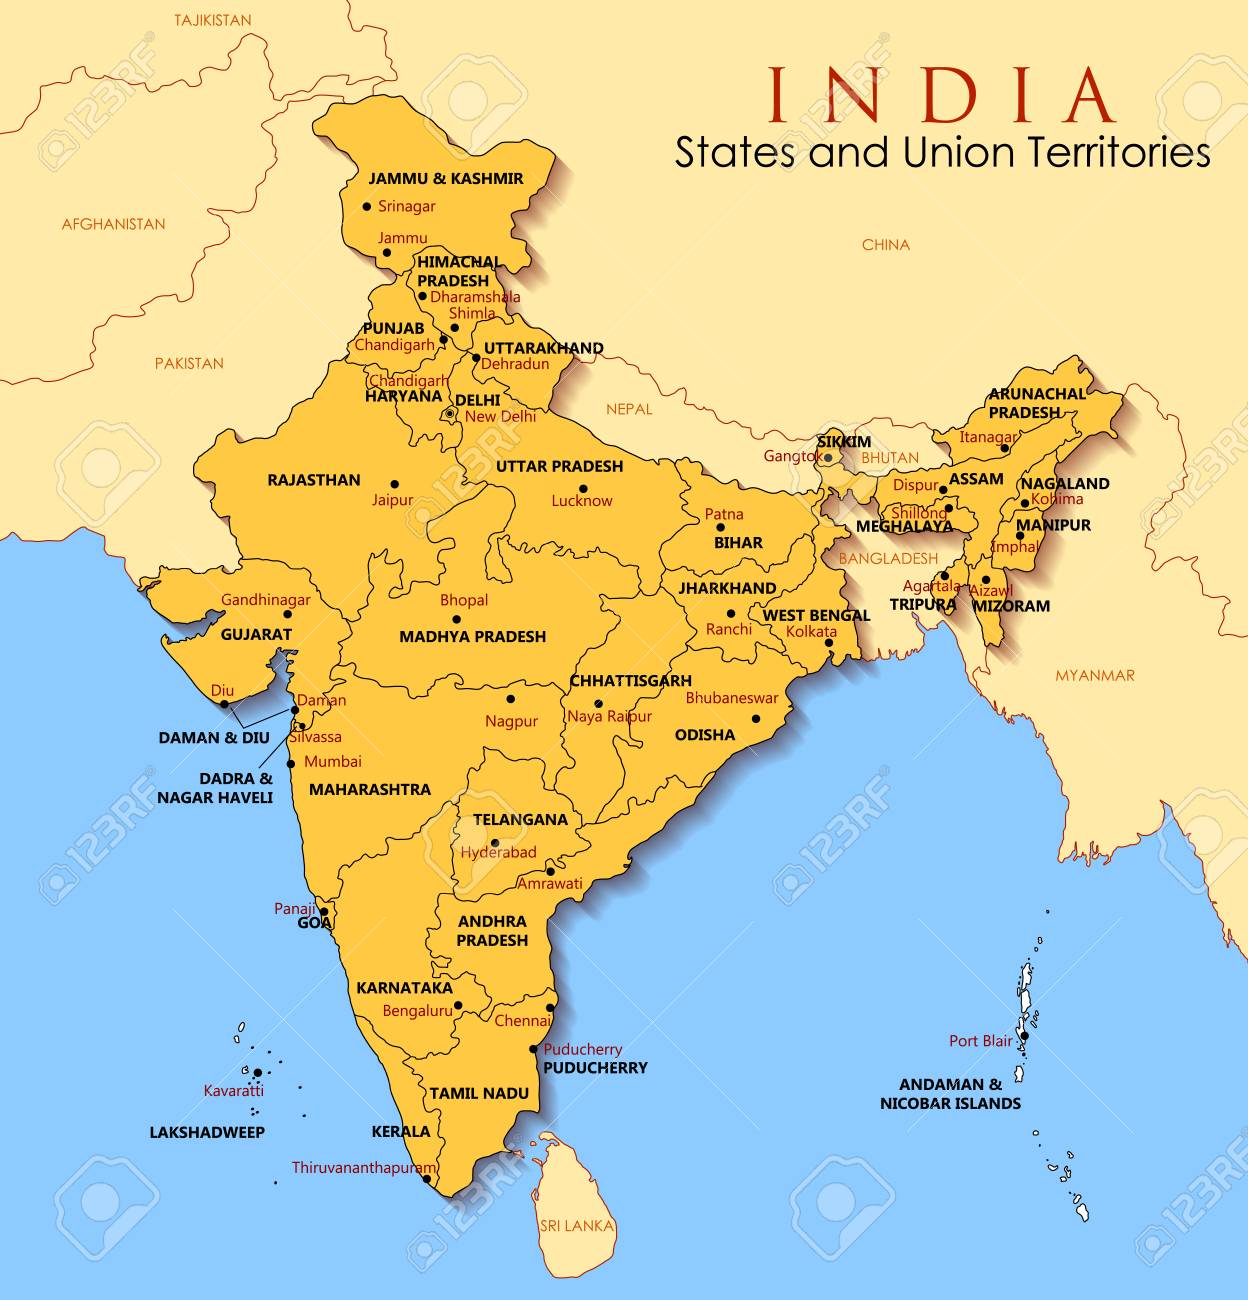 Map Of Asia India.Detailed Map Of India Asia With All States And Country Boundary